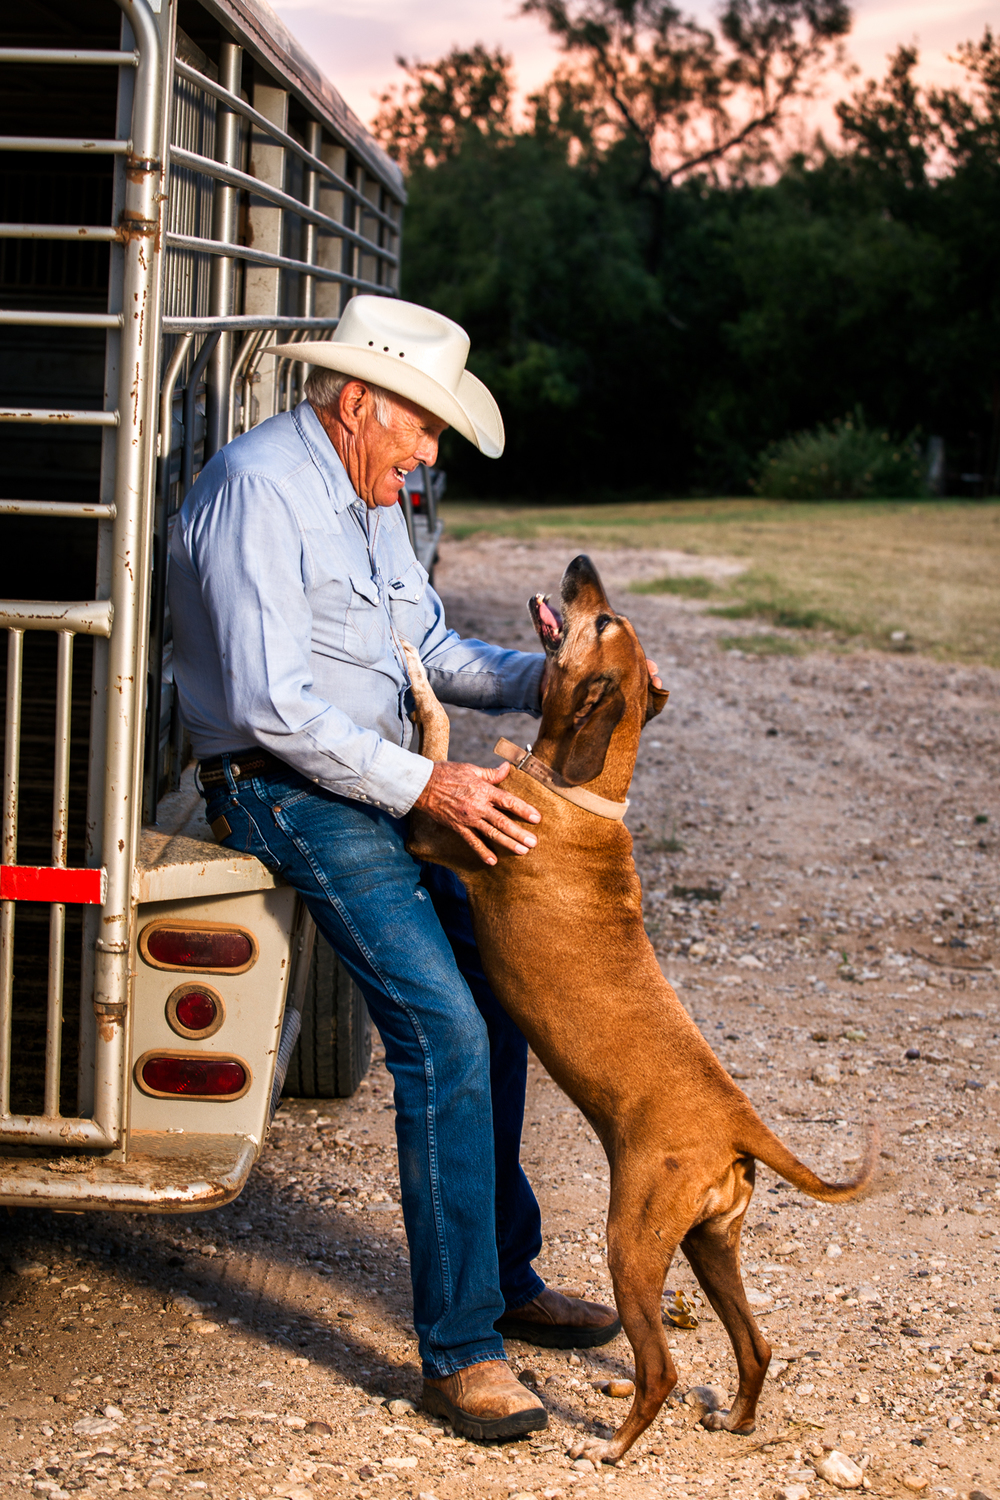 "September 1, 2013 - White River Lake, TX Canon 6D, 14mm f/2.8 This is a portrait I shot of my grandpa, Harvey Cannon, and his dog, Penny. Although this wasn't taken at the end of the year, it's probably one of the last significant photos I took last year.  I took it as around my grandpa's birthday, because: 1. I am TERRIBLE at buying gifts (I even get stressed at buying a card,) 2. I realized that I didn't really have any current, good photographs of my grandpa.  My uncle recently scanned several photographs from the 60's and 70's, so we have a lot of older photographs from my mom's childhood, but in terms of nice photographs that are better than, say, an iPhone pic, there aren't any. Little did I know that that point the value of this photograph.  Last month my grandpa was out doing a routine replacement of a water pump pressure tank. The bottom of the tank was rusted out unbeknownst to my grandpa, and it exploded upwards, shattering the area around his nose and cheeks.   He survived it, but he's VERY lucky. He said that when it first happened he landed on his back, and because of his injuries, if he had lost consciousness, there was a high chance that he would have suffocated due to his injuries. This is probably the first time that I realized firsthand how important photography is. Although I do not like to say that we ""capture memories"" (cliche, cliche, cliche), that is kind of what we do. There are many uses for photography from communication to art to advertising, but one of the most common is just simply photographing for posterity. Sometimes that's all a photo needs to be for, too. Today it seems like so many photographers take more photographs of other people than they do their own family"